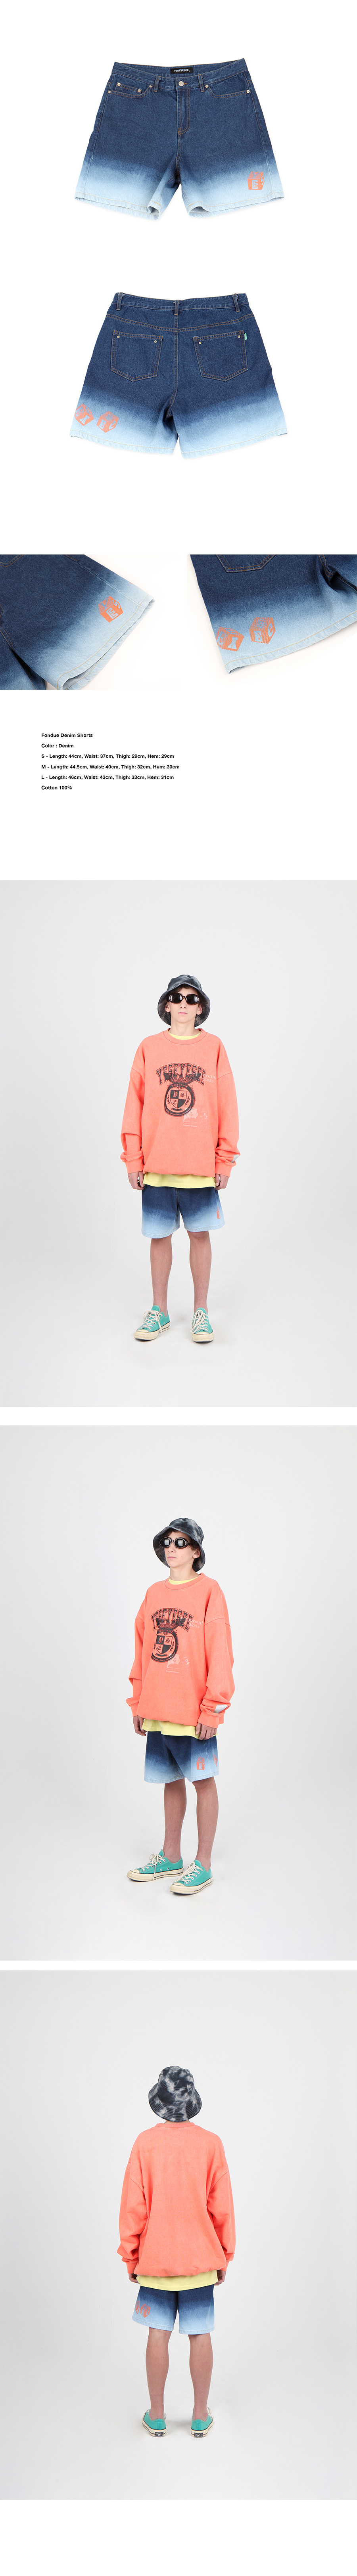 예스아이씨(YESEYESEE) Fondue Denim Shorts